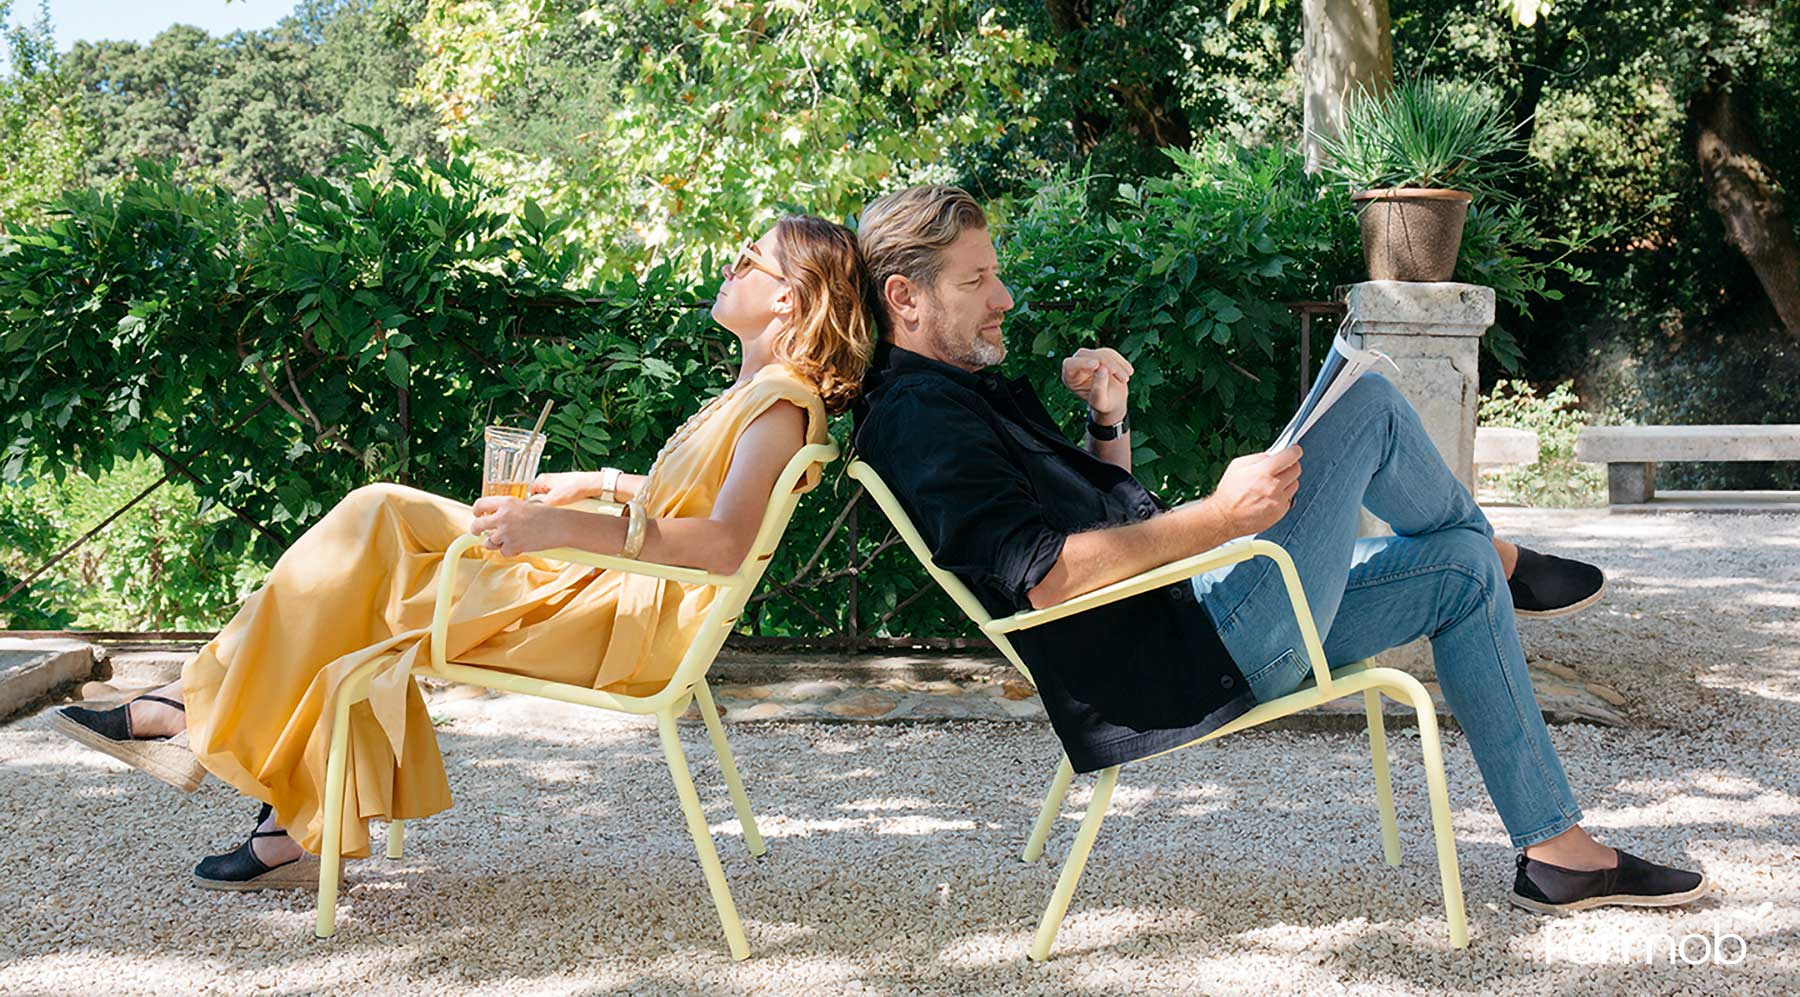 Fermob Luxembourg Lounge Armchairs with man and woman seated in outdoor garden space